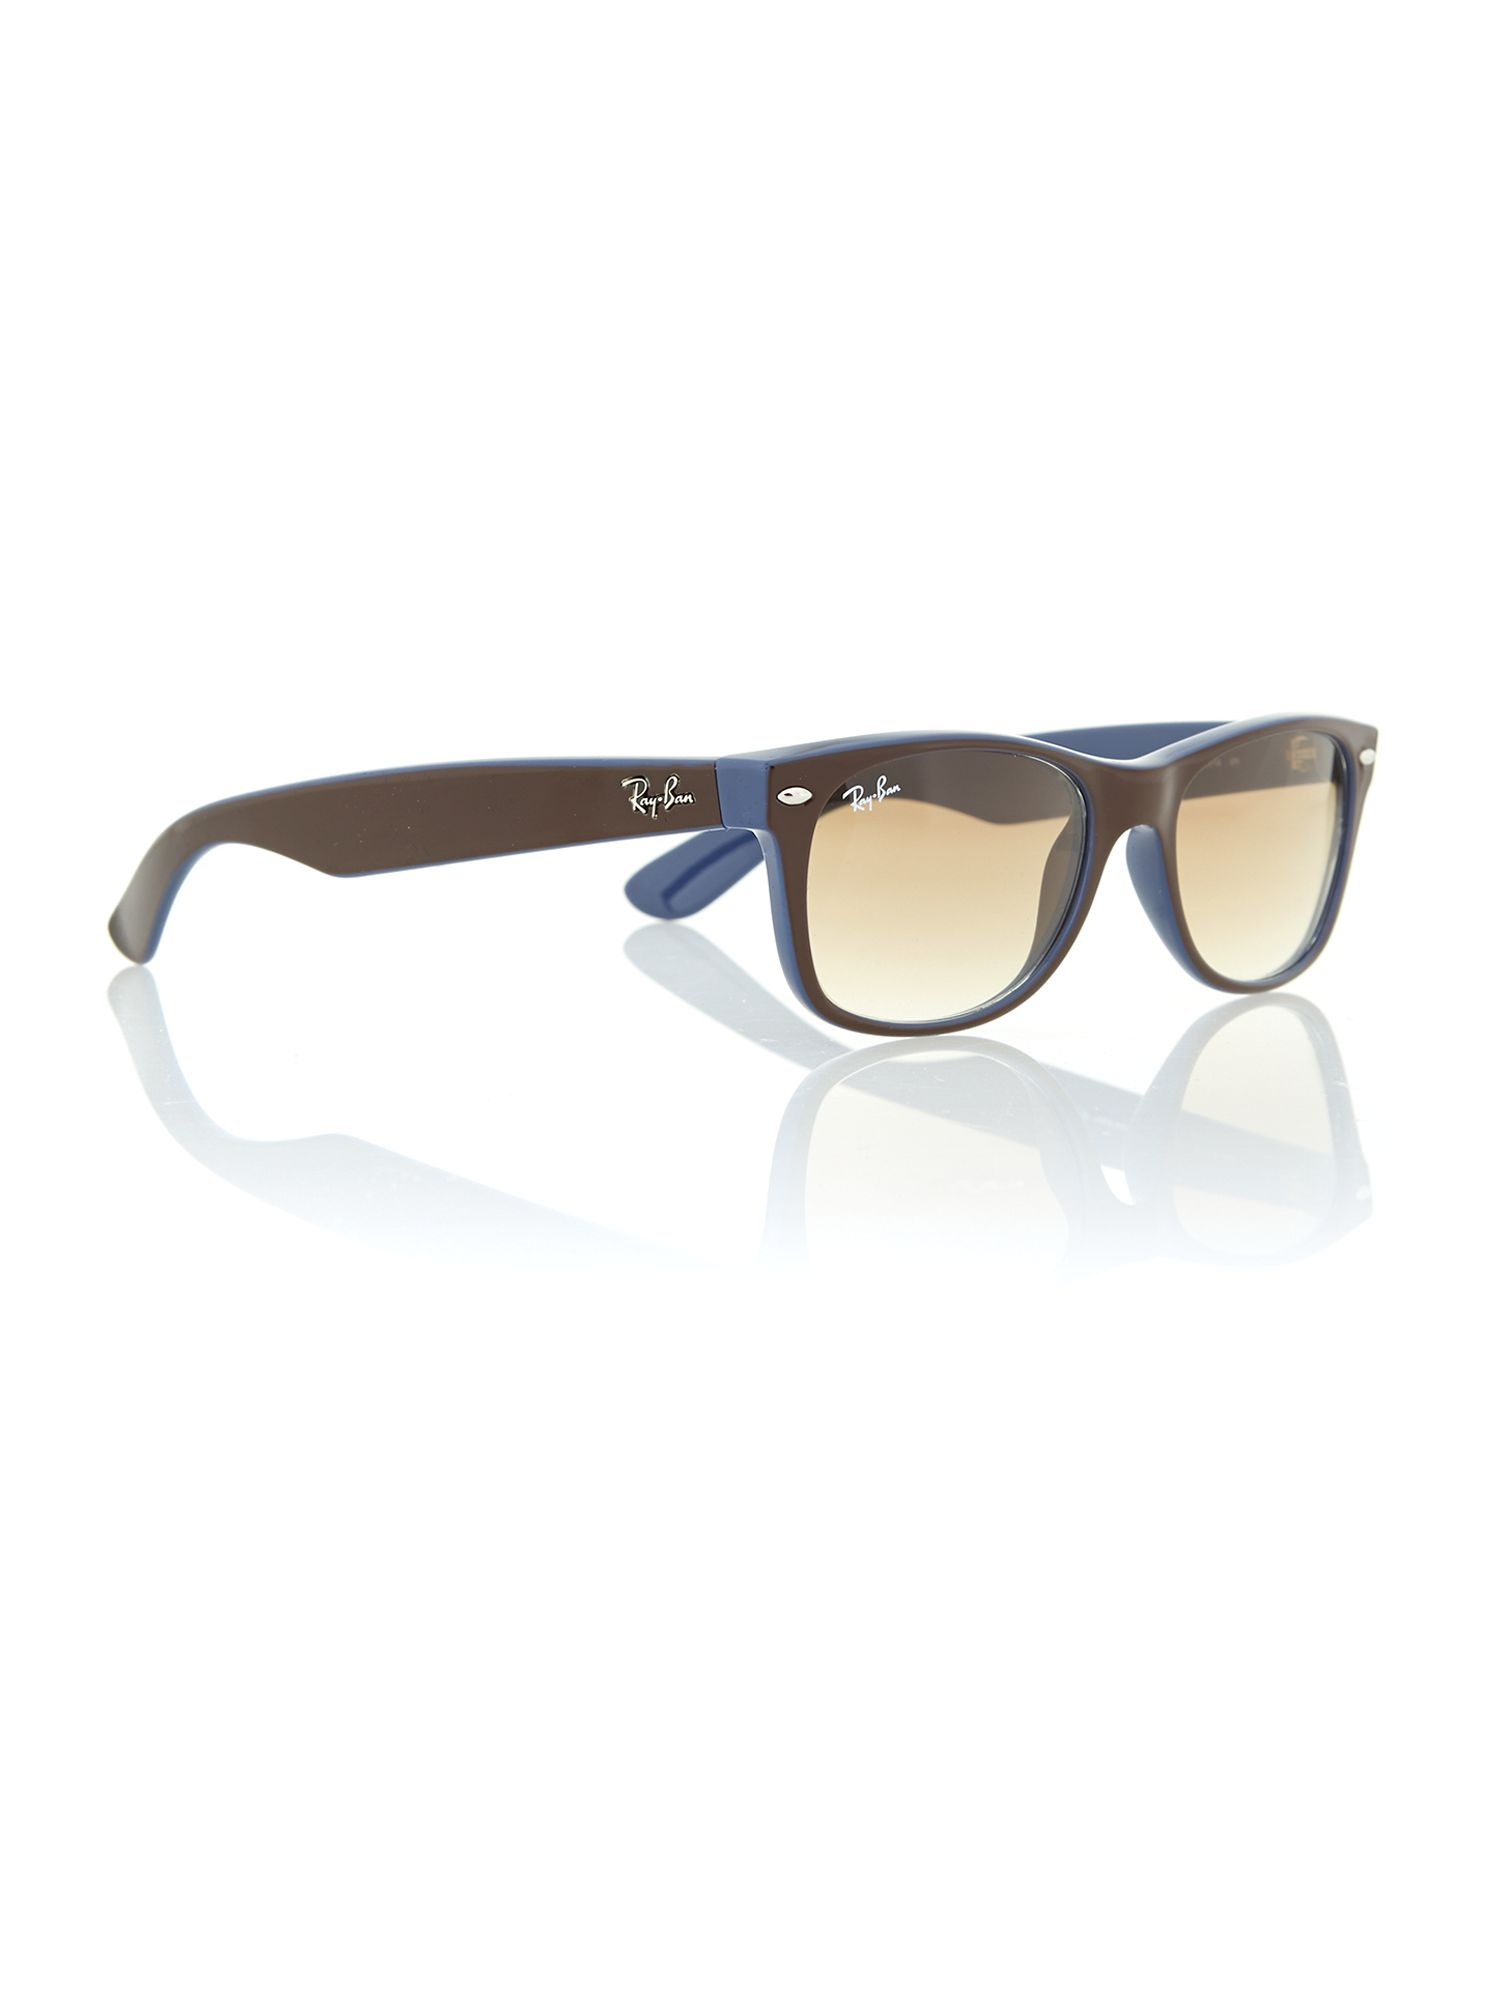 ray ban new wayfarer sunglasses top brown on blue  gallery